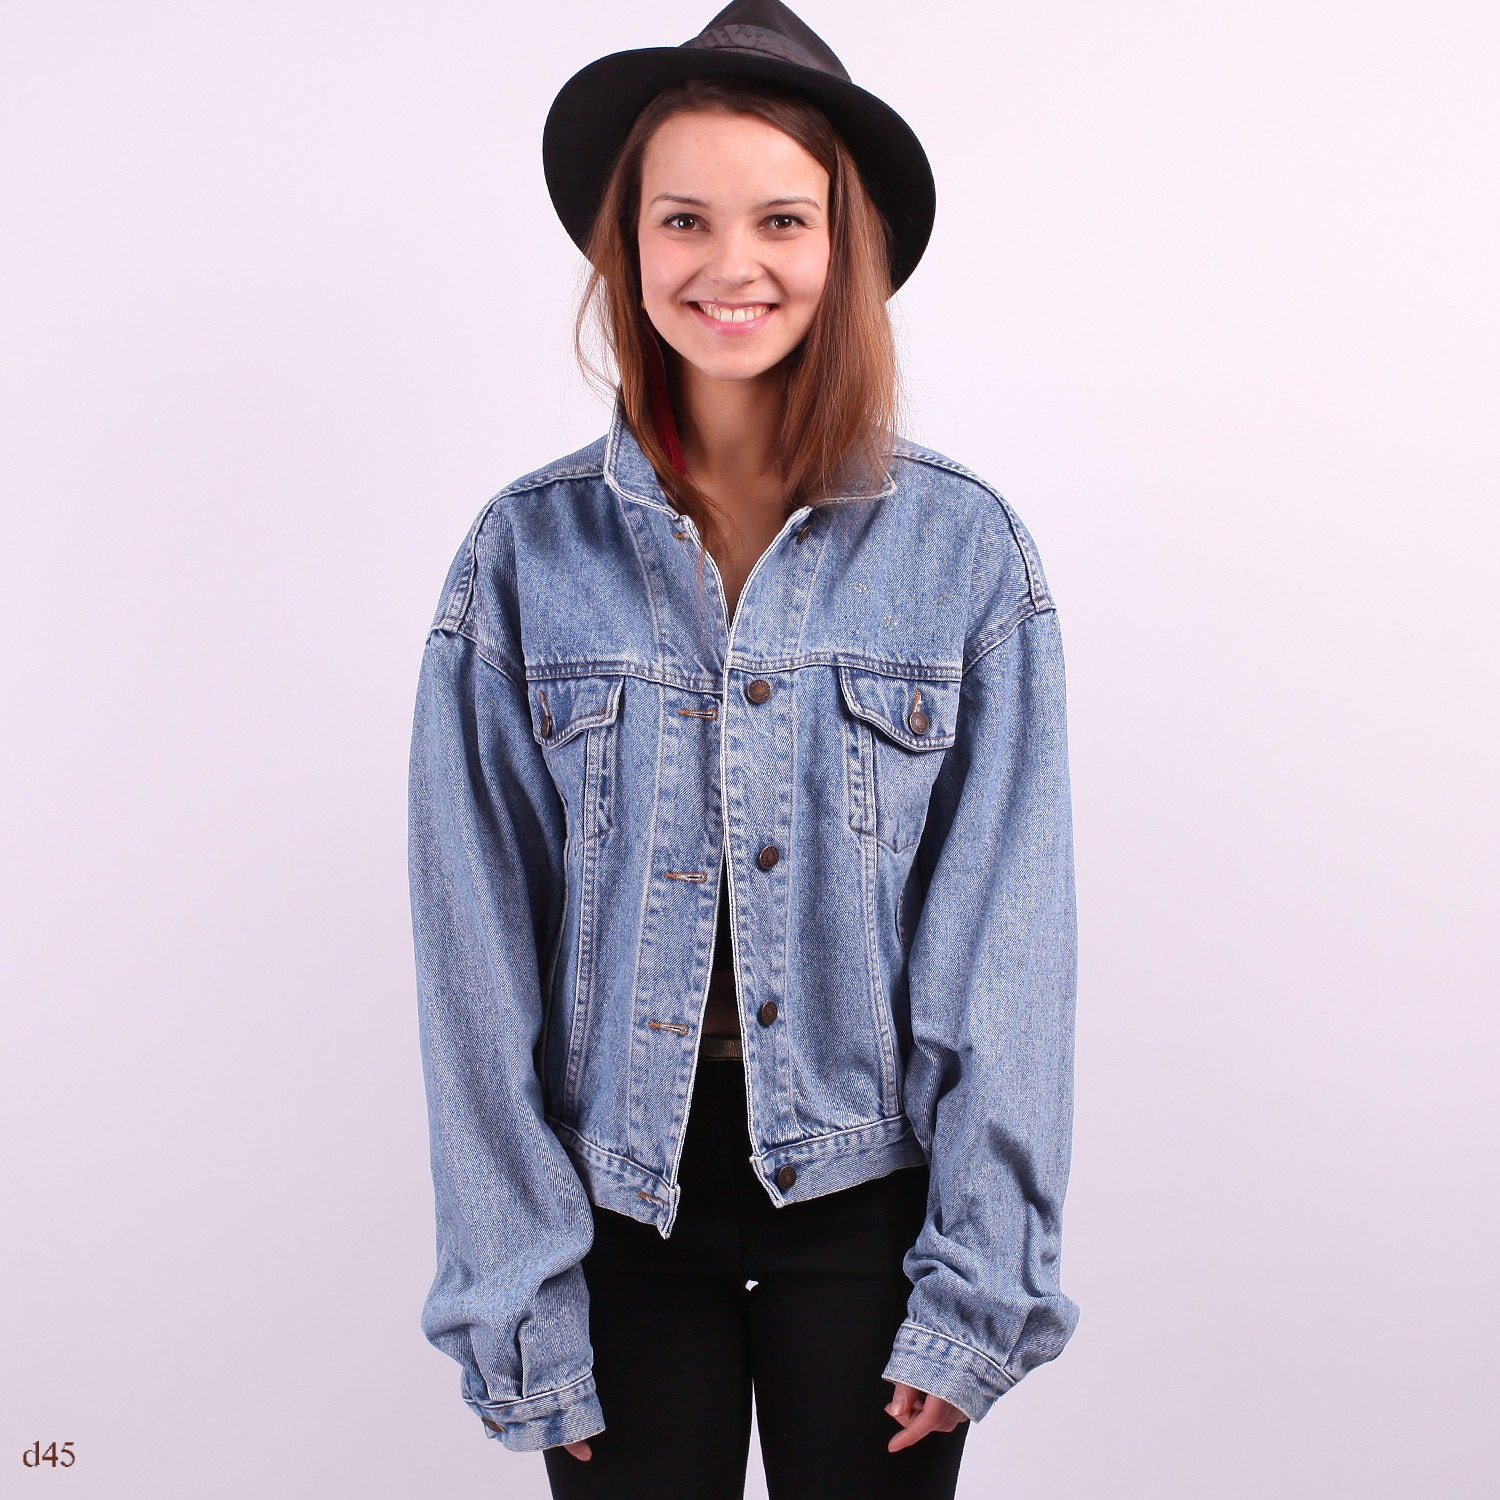 Large Denim Jacket - JacketIn